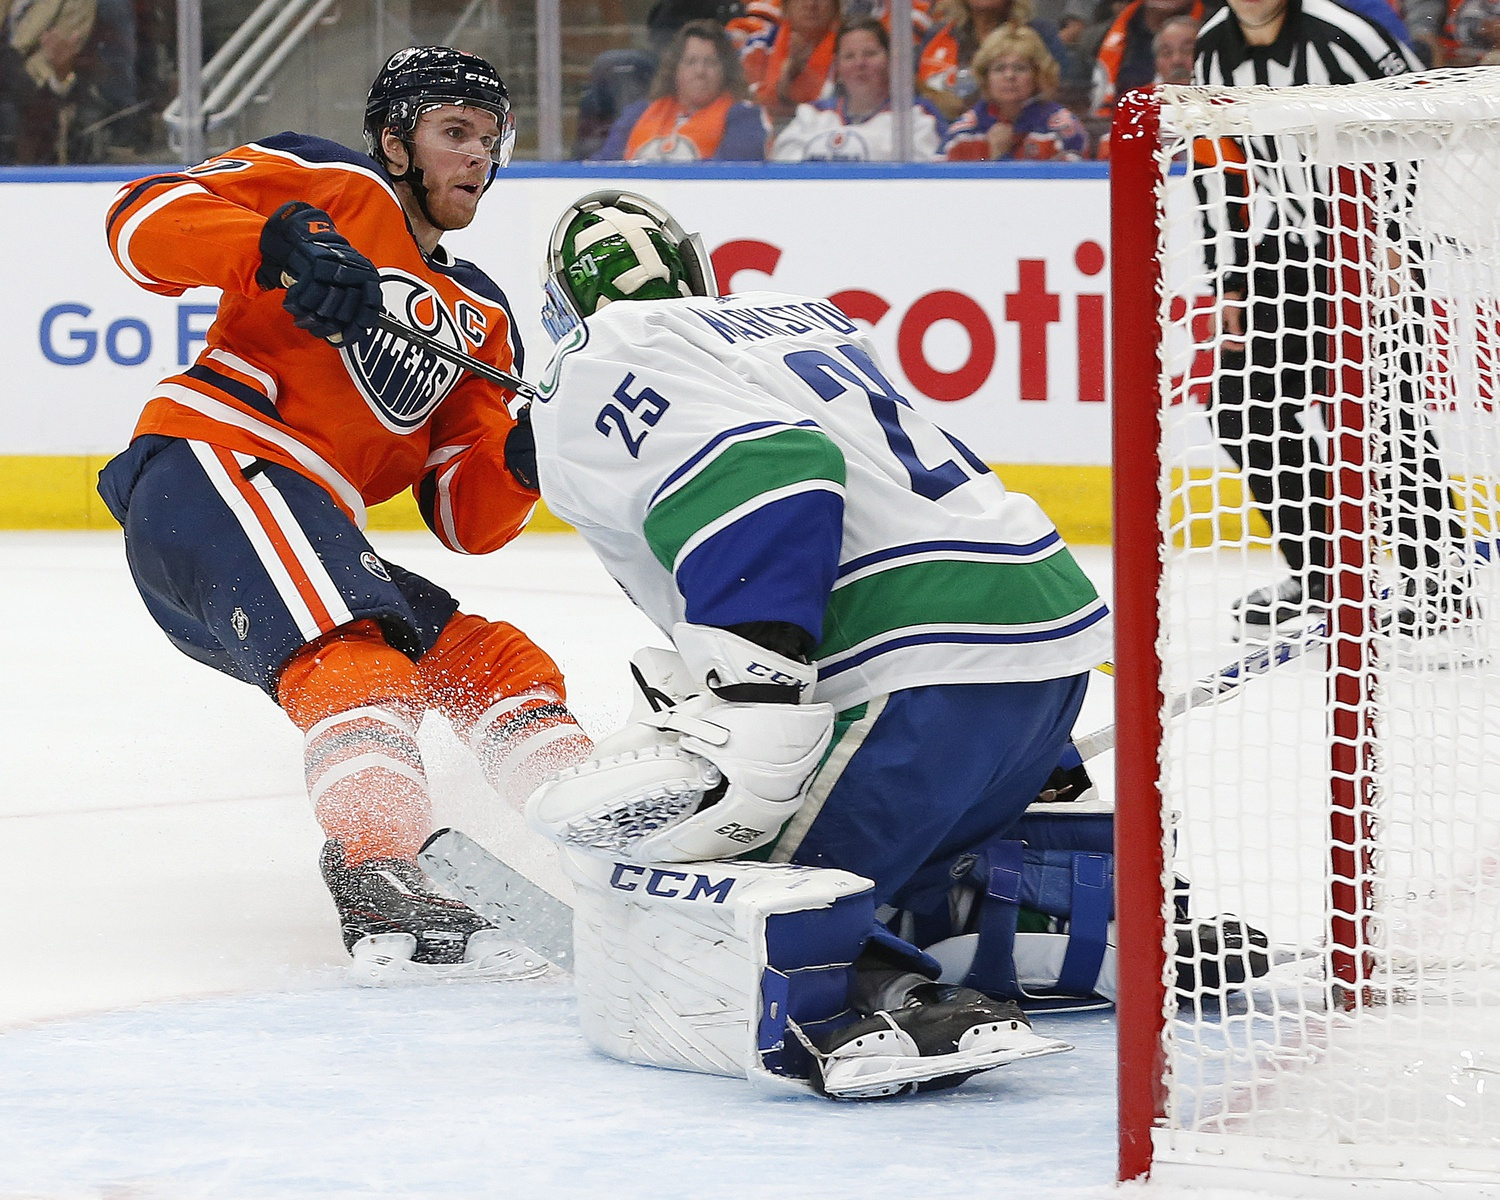 Vancouver visits Draisaitl and the Oilers